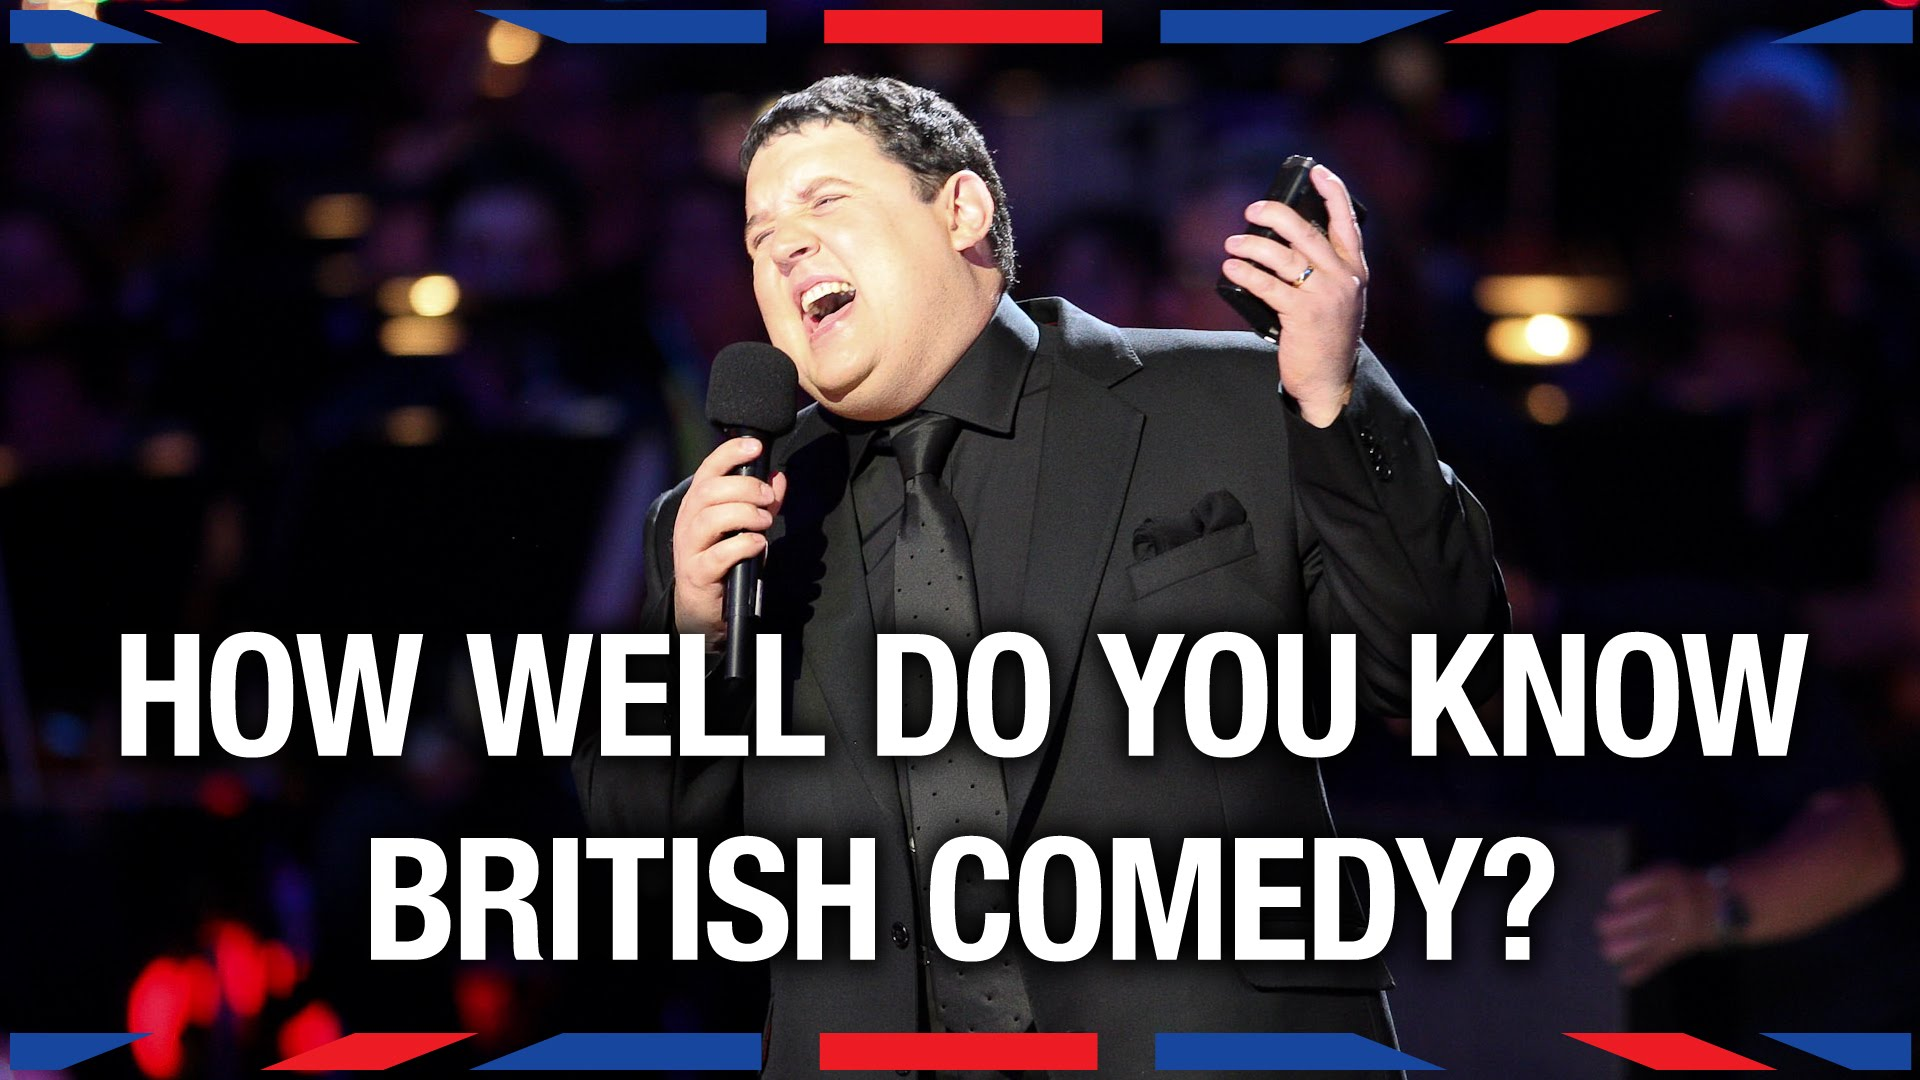 A Series of British Comedy Legends With Which Americans Might Not Be Familiar